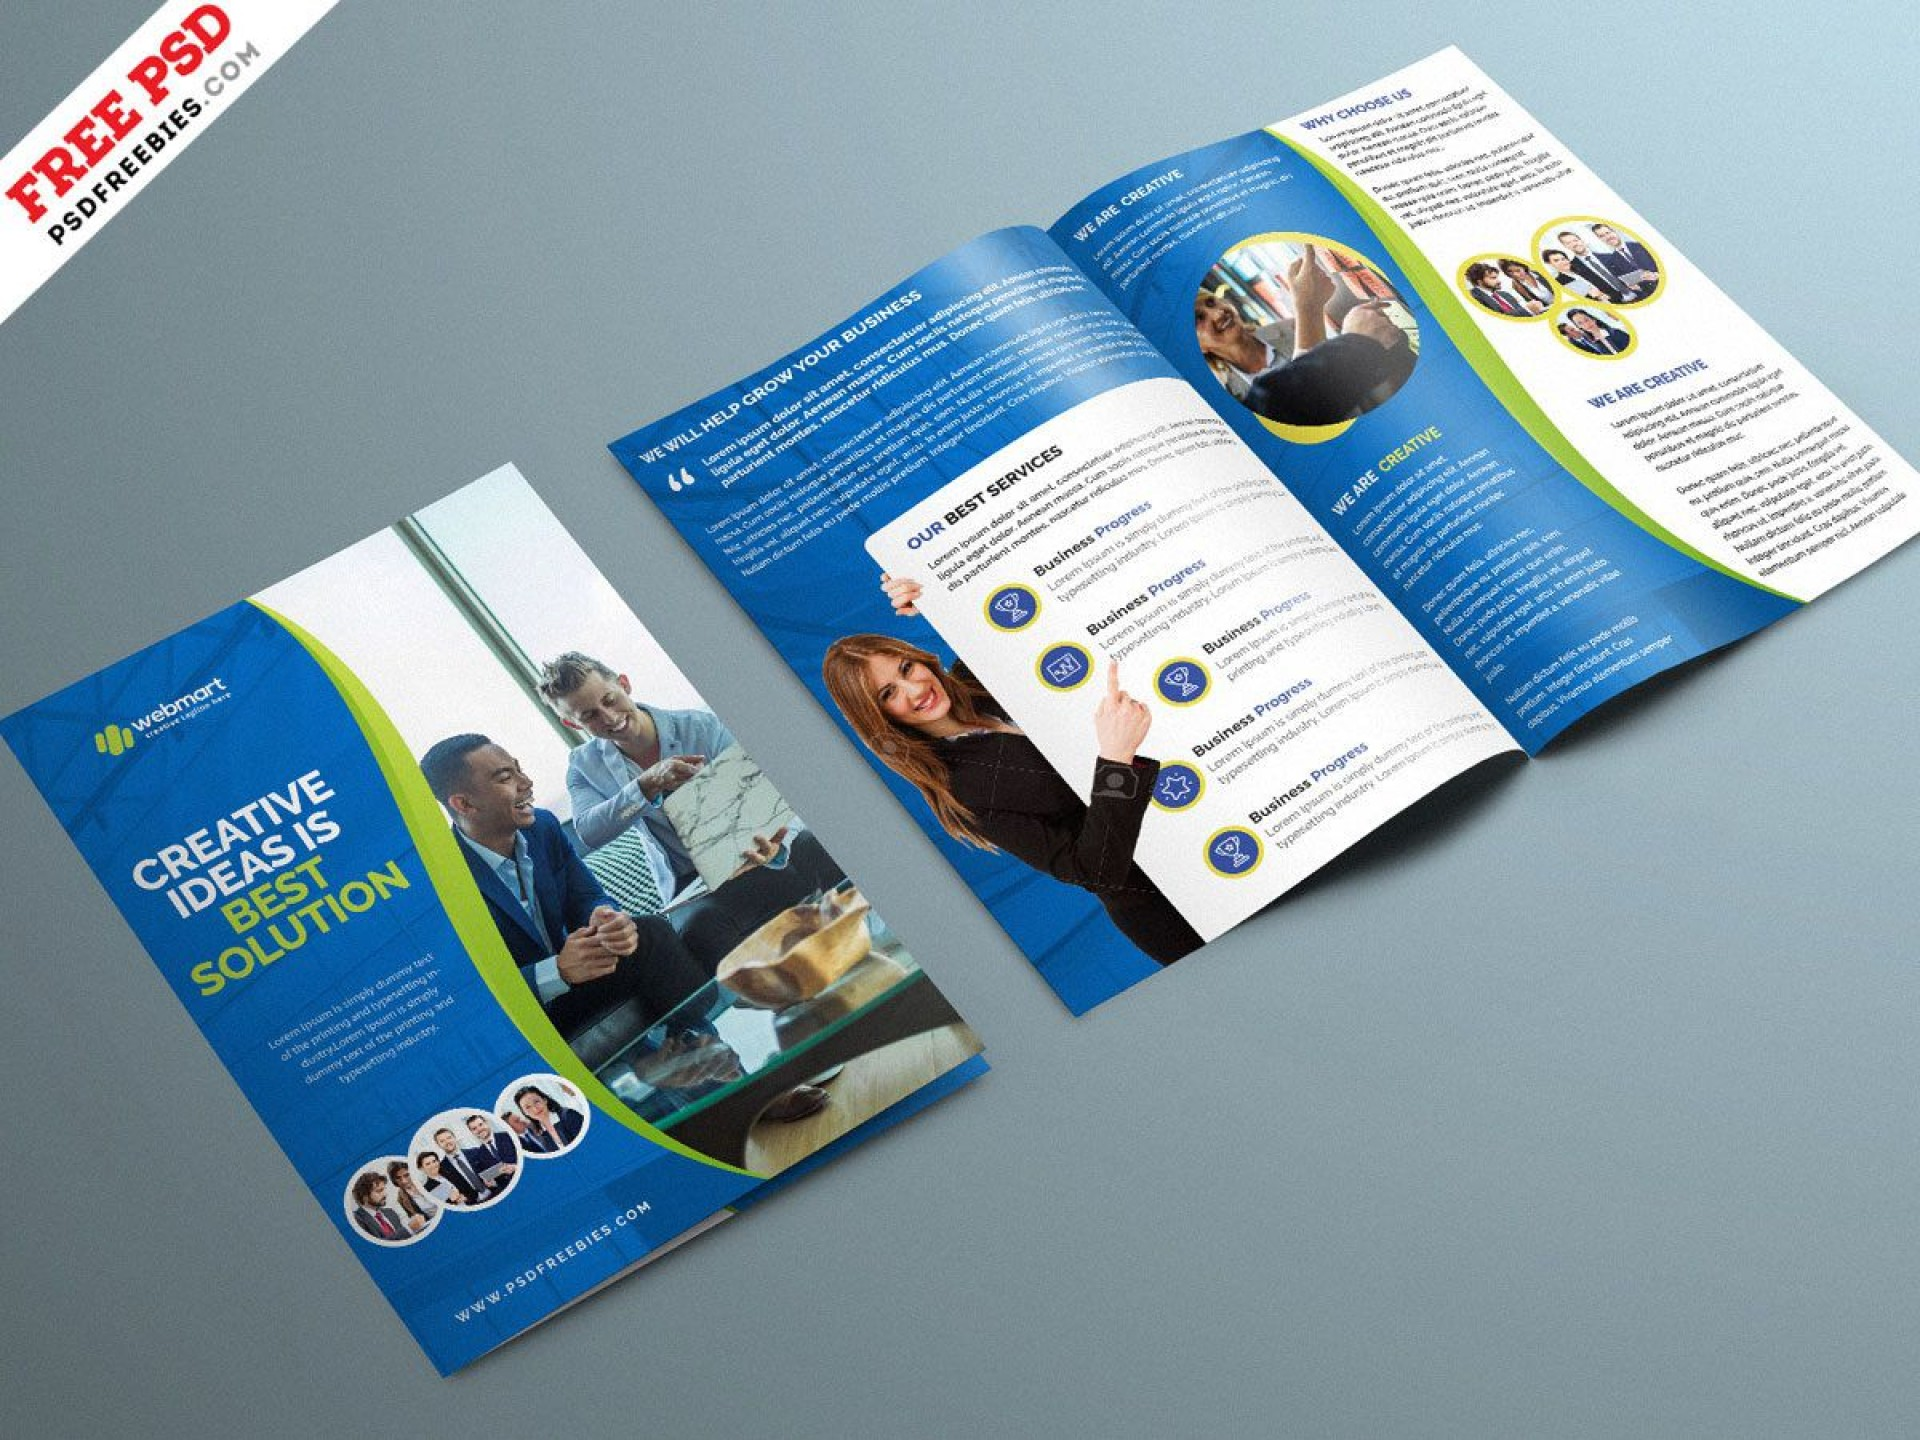 004 Magnificent Brochure Design Template Free Download Psd High Definition 1920